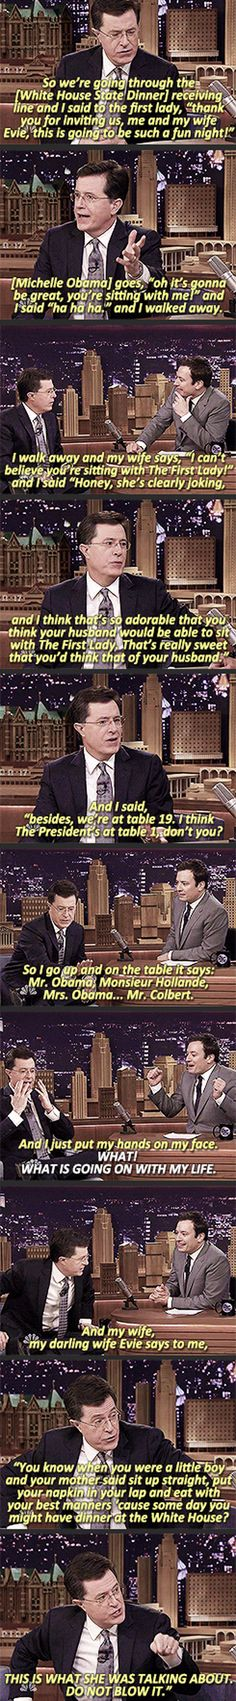 Stephen Colbert And The First Lady // funny pictures - funny photos - funny images - funny pics - funny quotes - #lol #humor #funnypictures